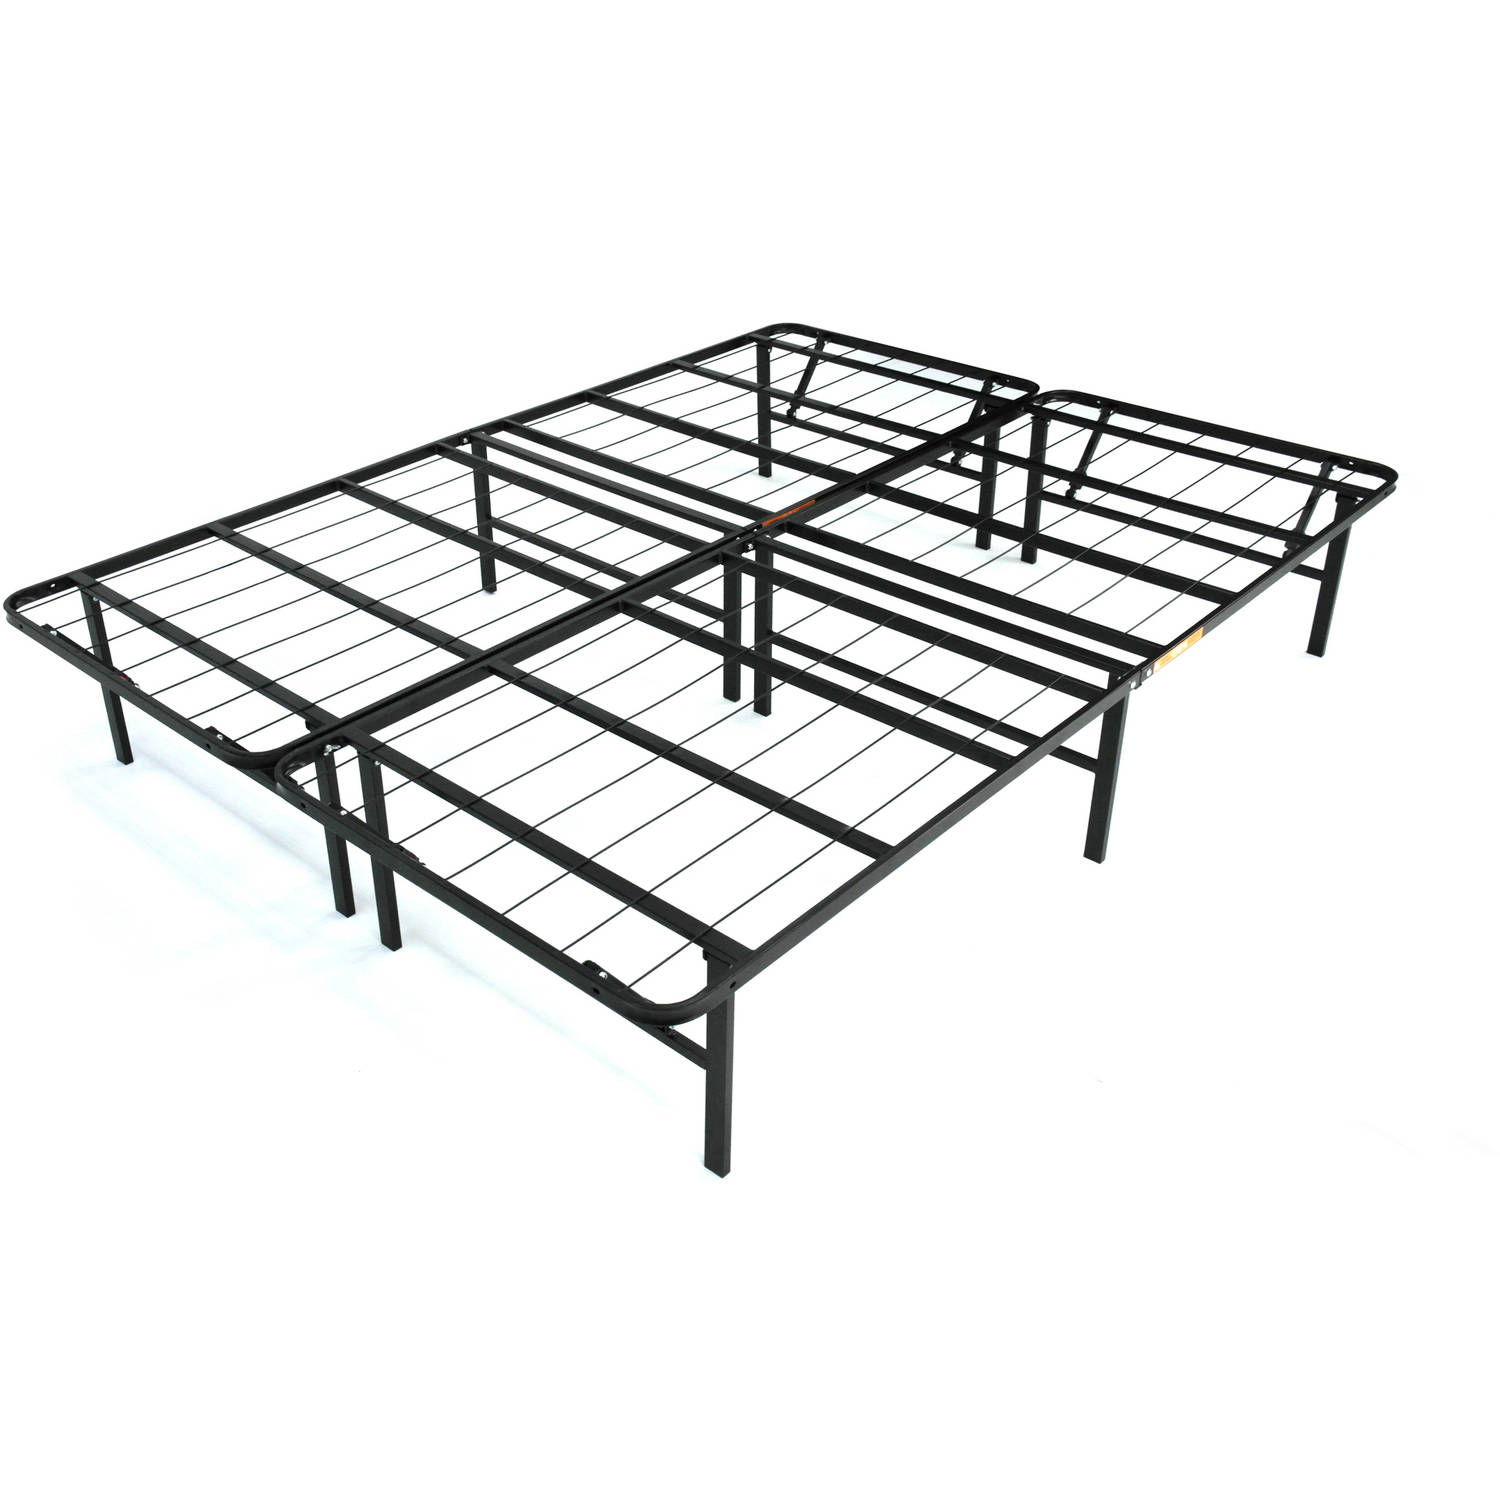 Mainstays Innovative Metal Platform Base Bed Frame, Multiple Sizes